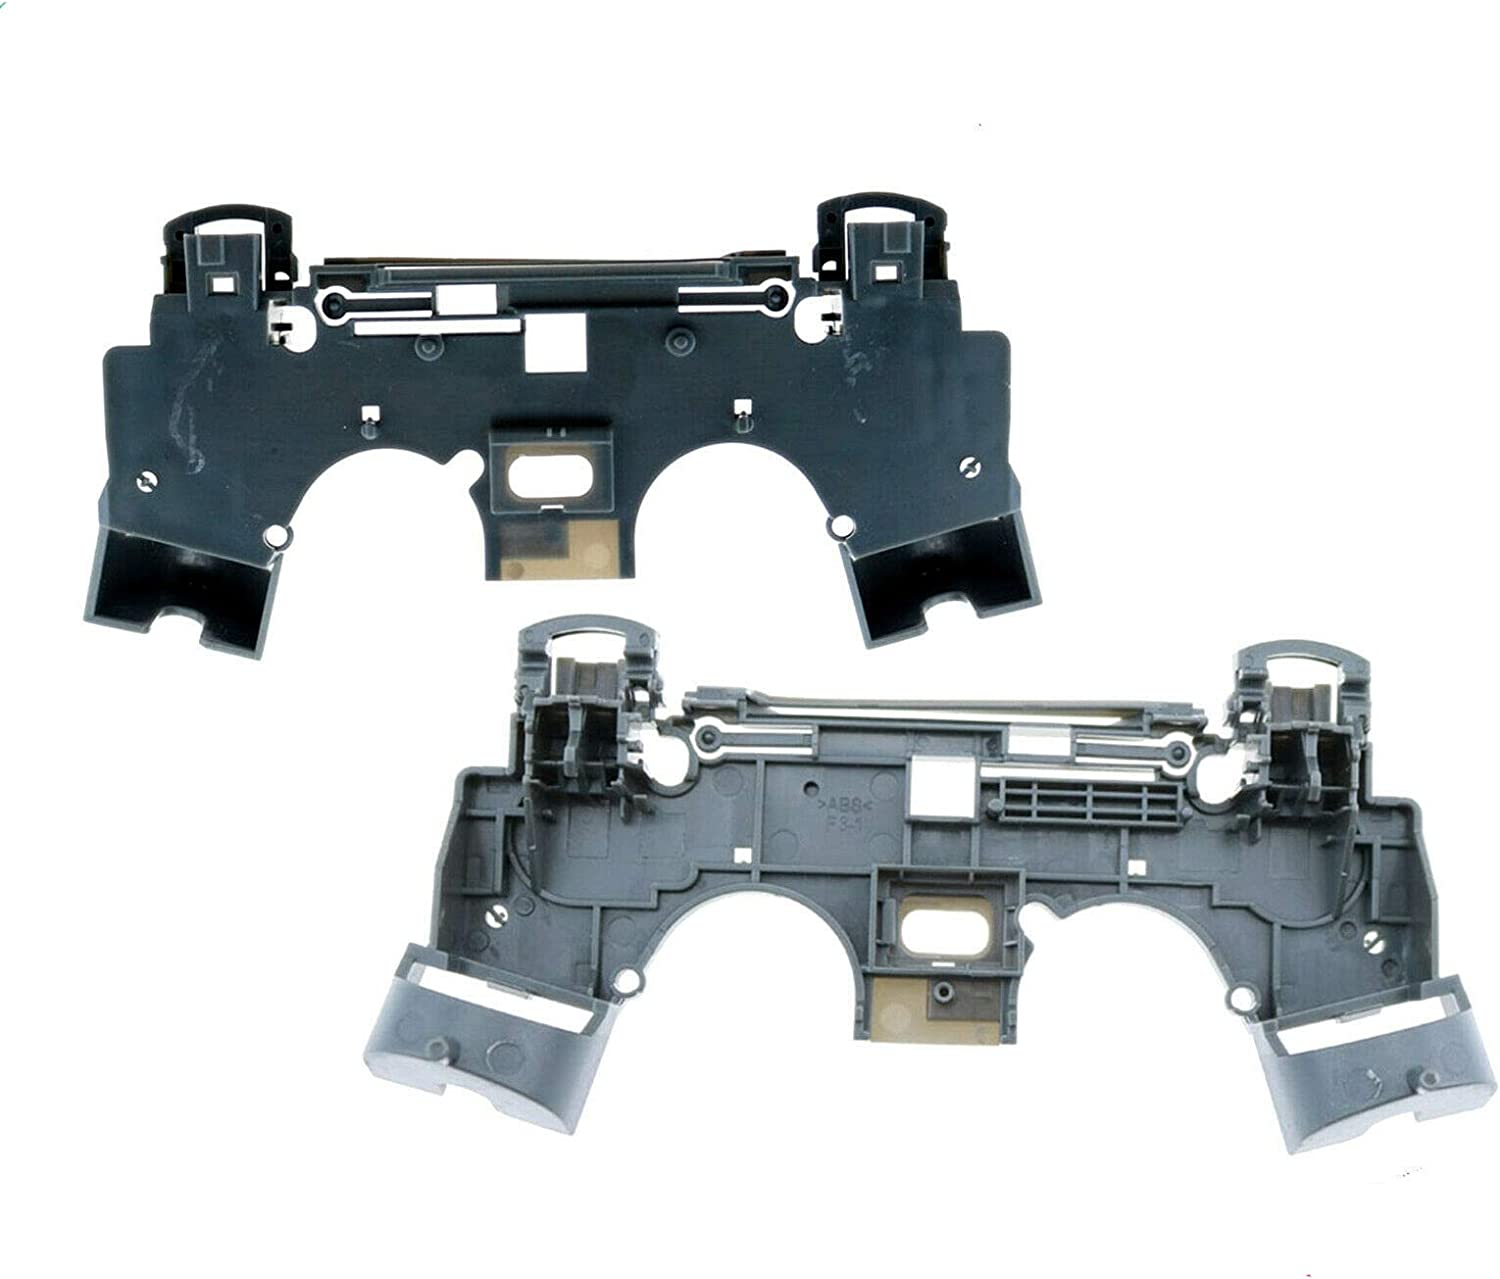 Oklahoma City Mall Internal Holster Case Casing Chassis Controller Popular brand Command